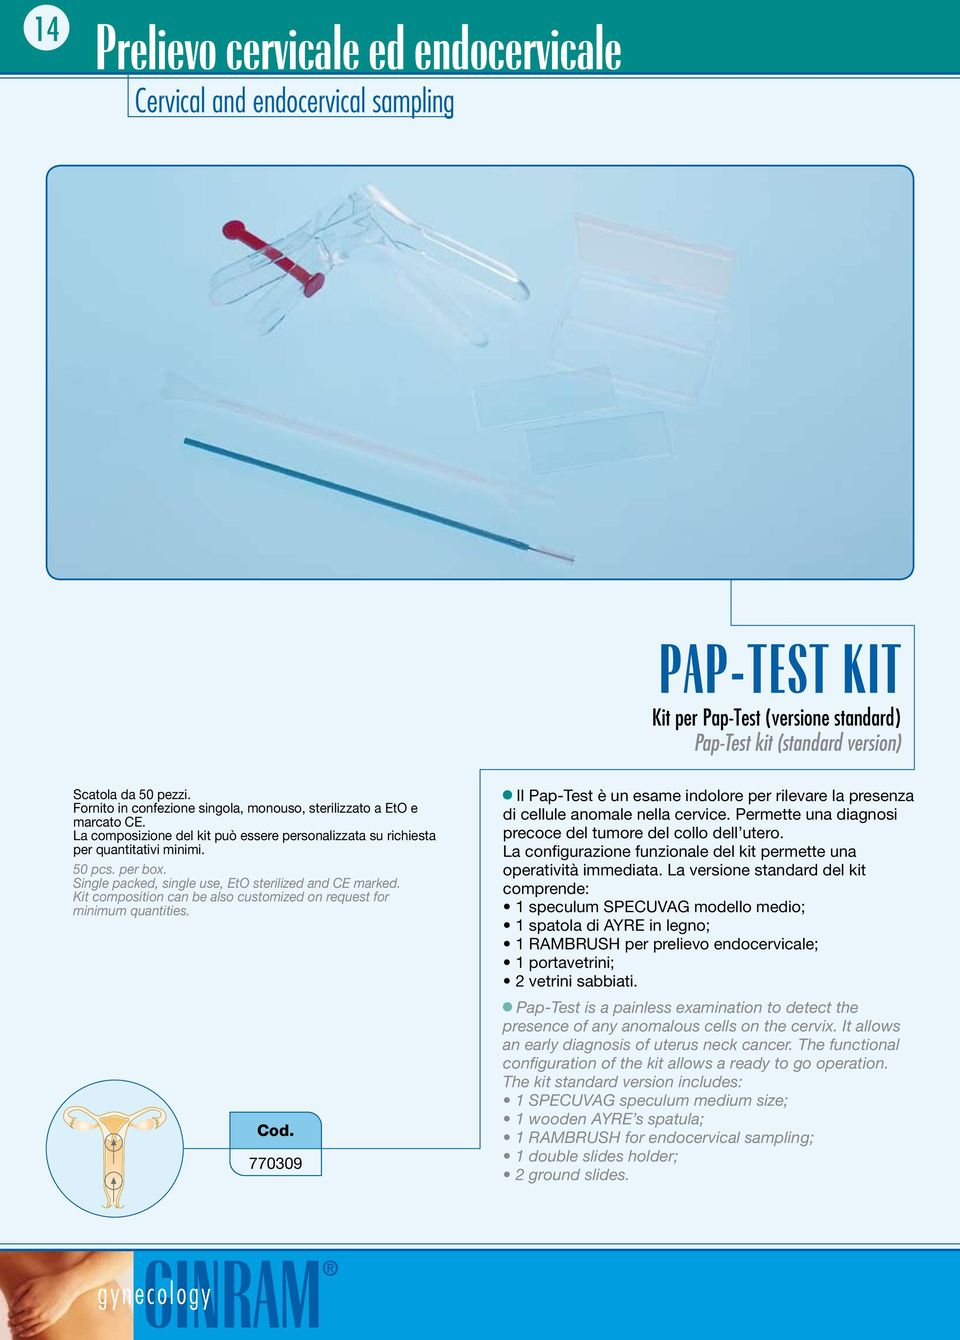 Single packed, single use, EtO sterilized and CE marked. Kit composition can be also customized on request for minimum quantities.